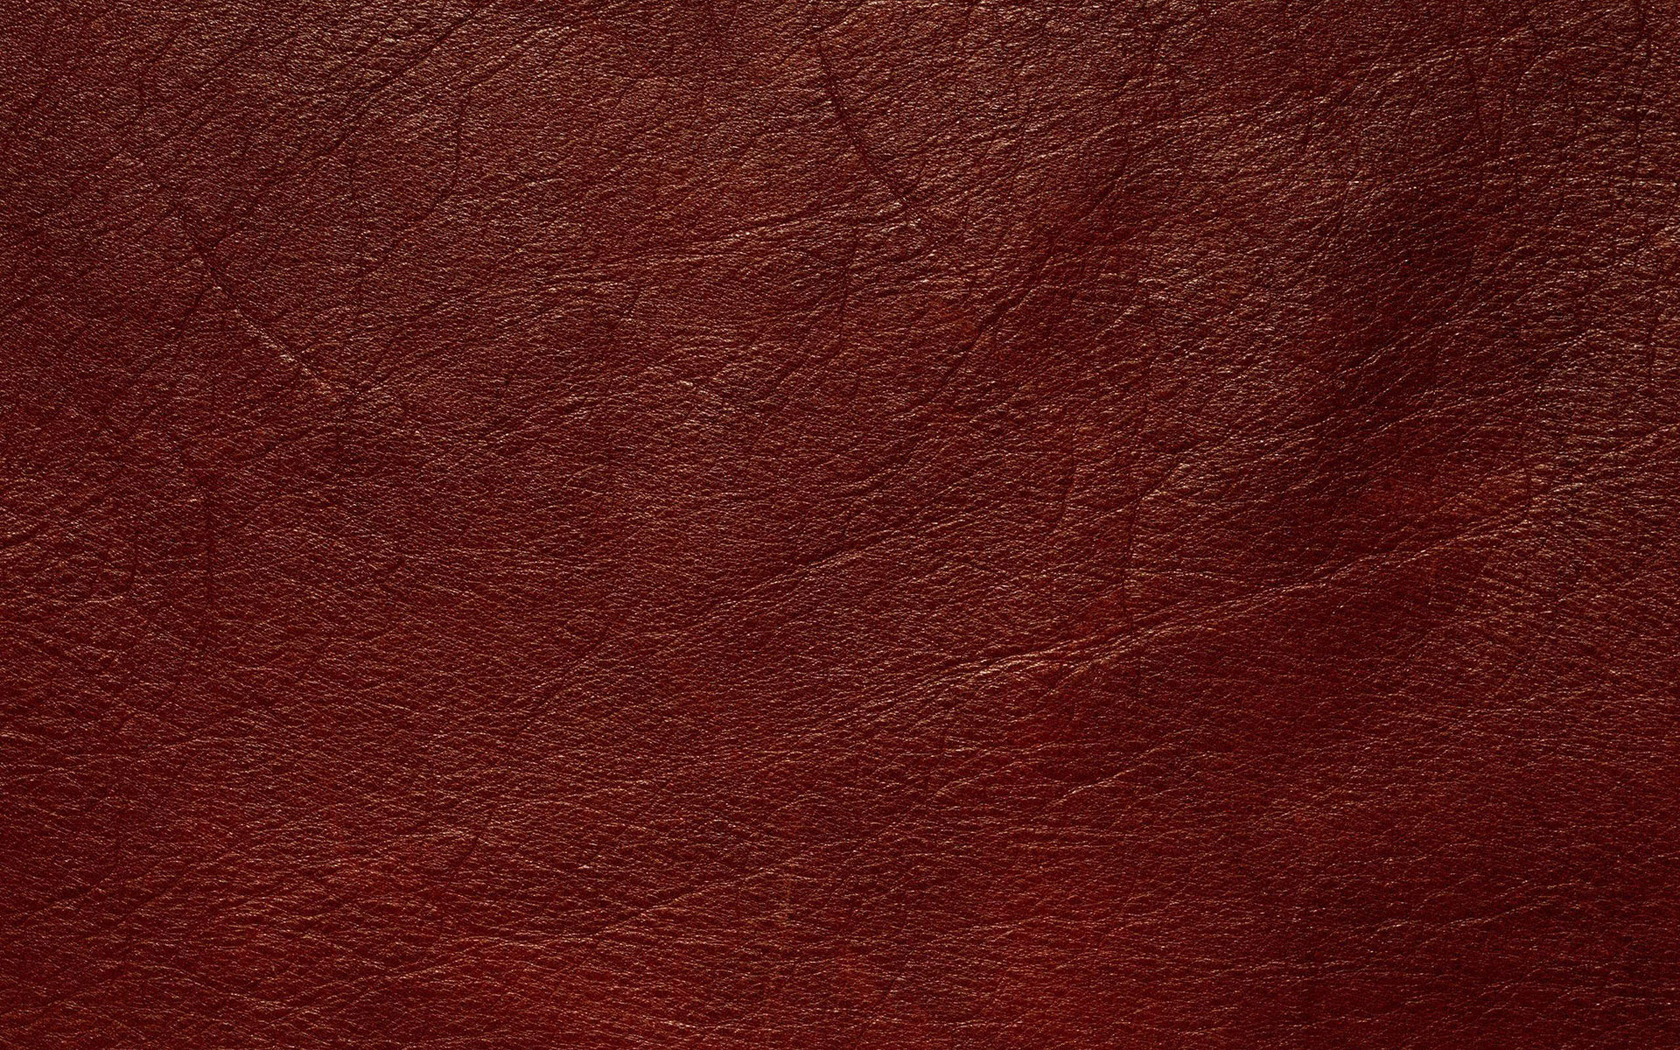 Download Leather texture wallpaper 1680x1050